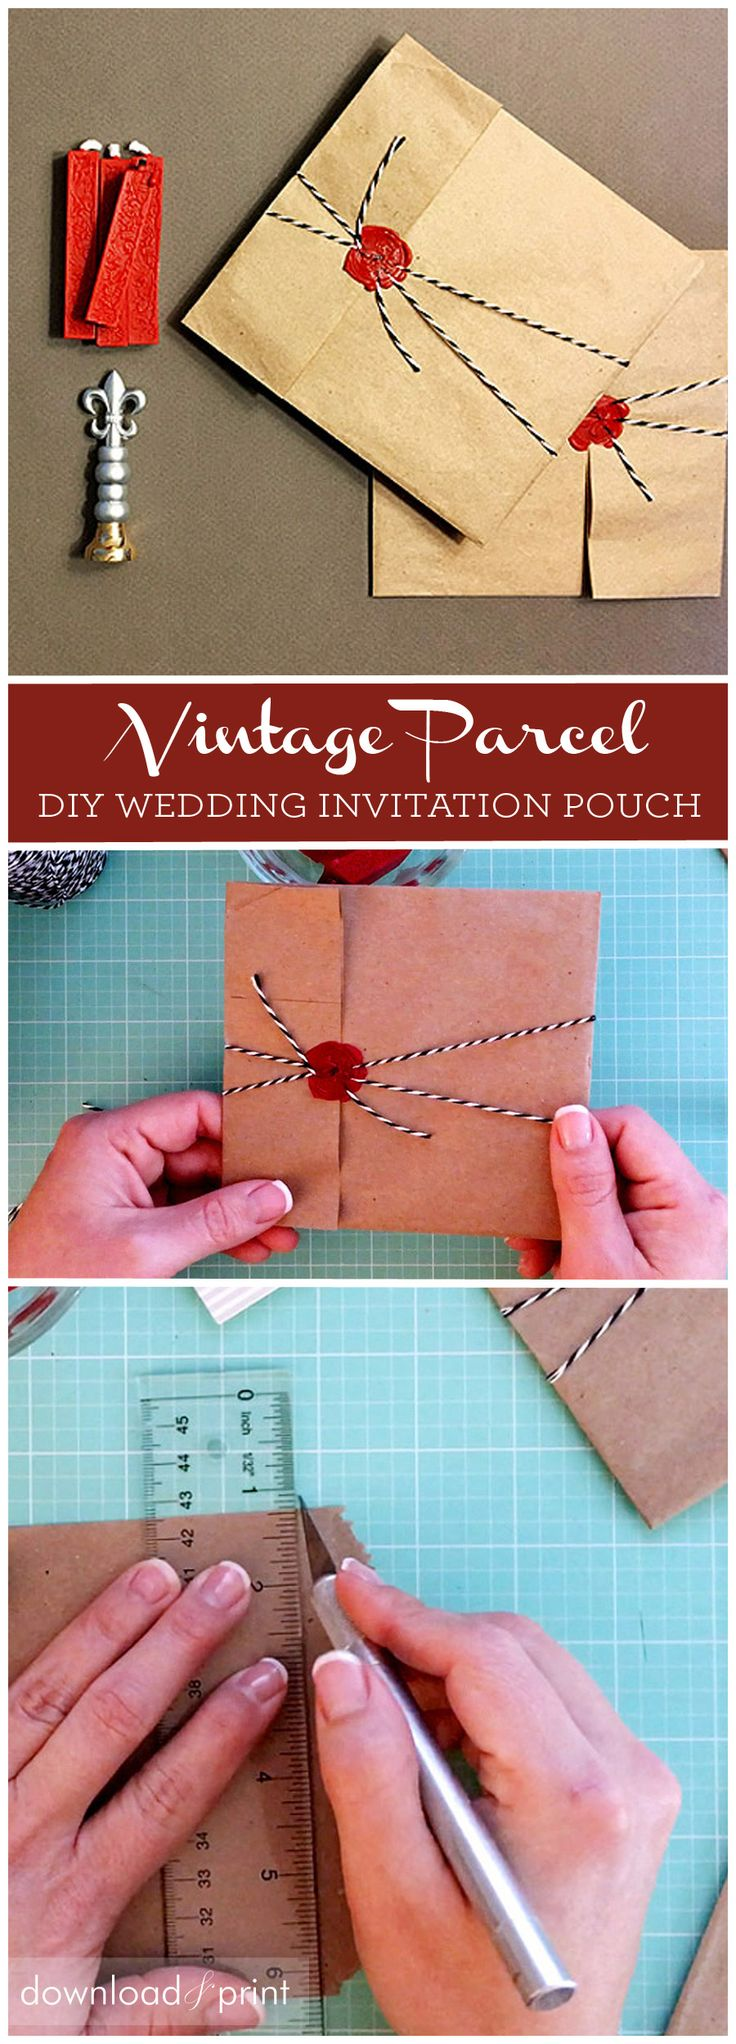 DIY vintage parcel wedding invitation pouch. Use a kraft bag, bakers twine and wax seal to create a cute vintage pocket for your invites.